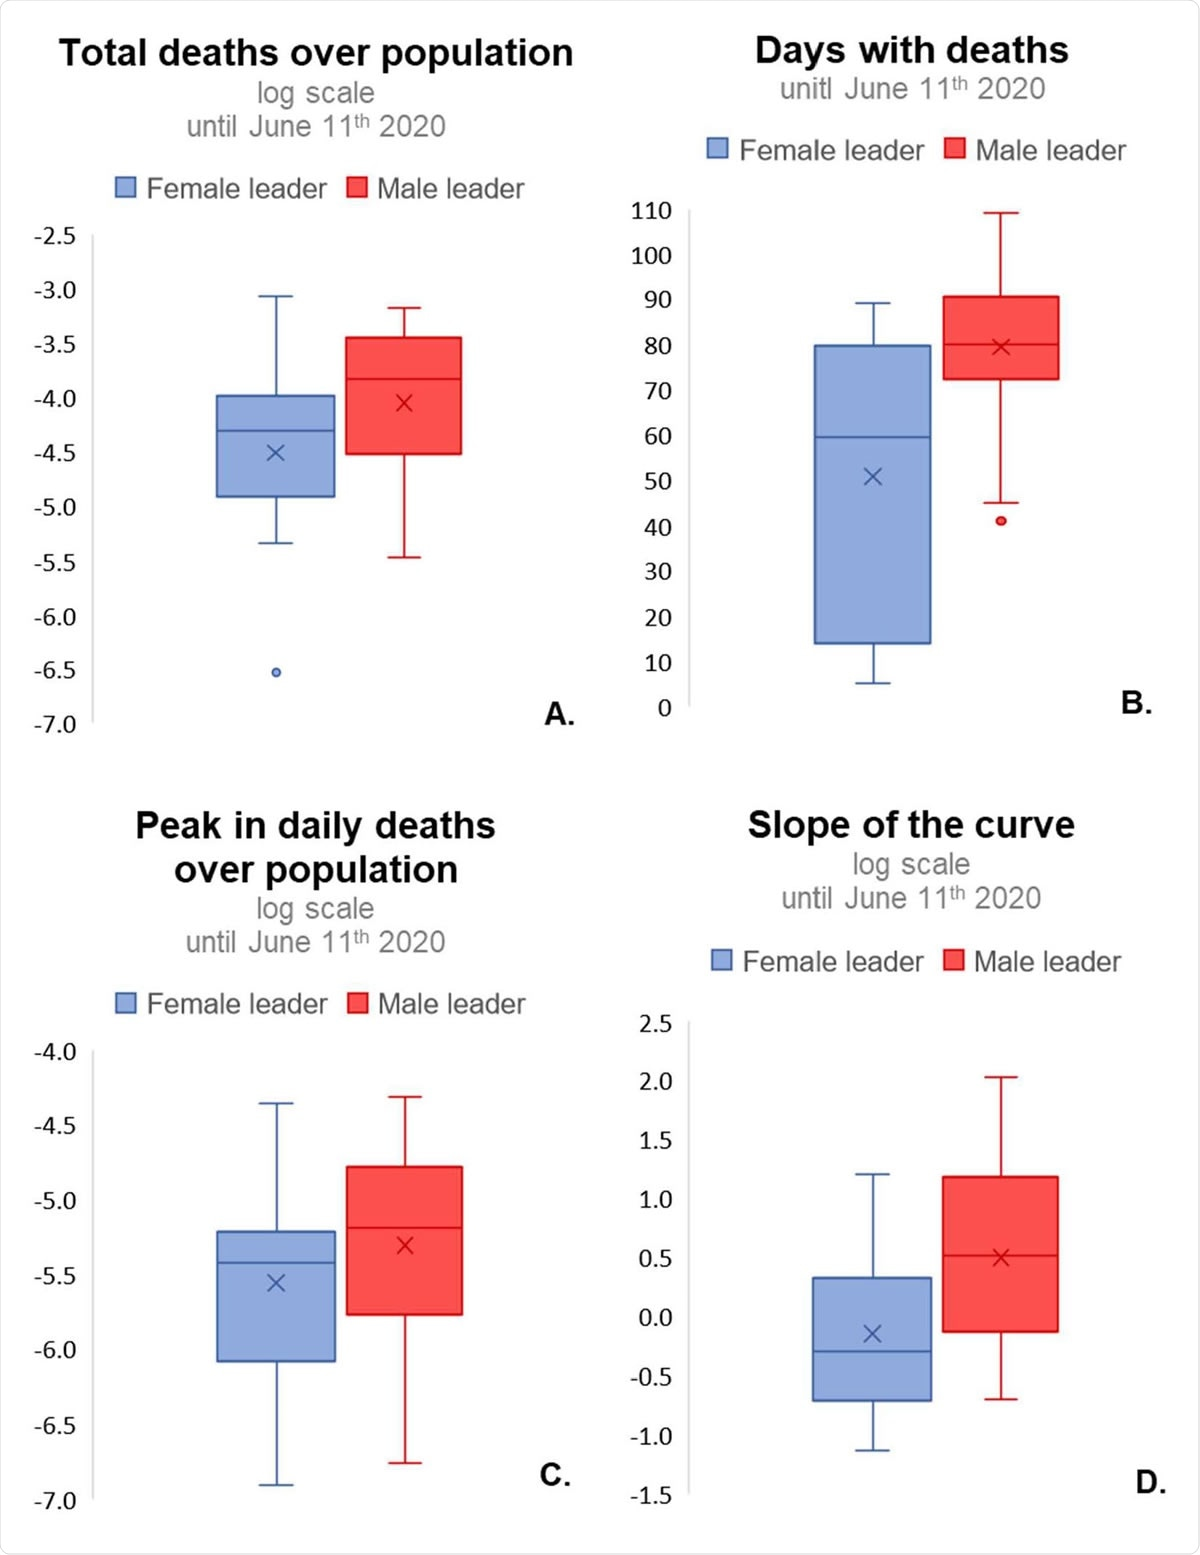 Box-plot of main impacts of COVID-19 in countries with male leaders and countries with female leaders.